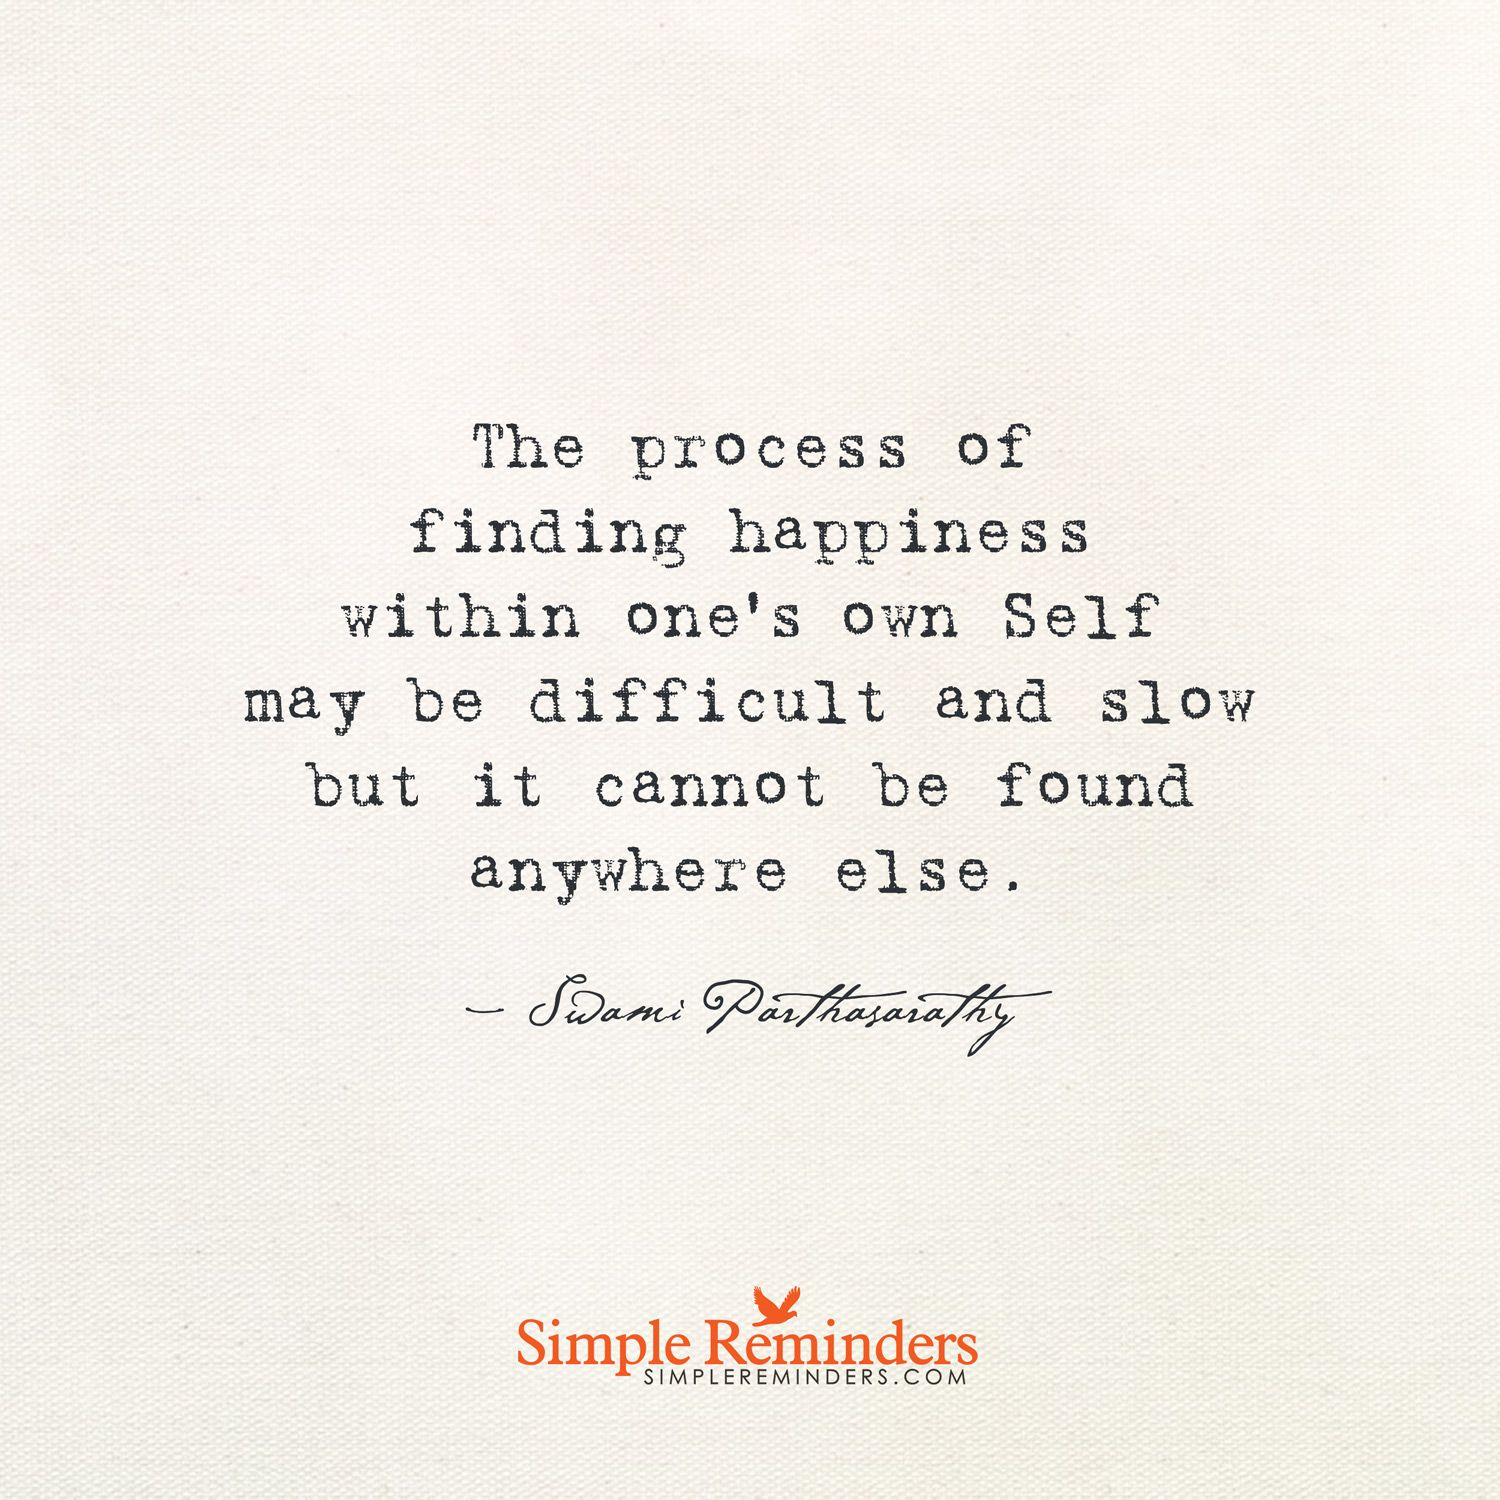 The process of finding happiness within one's own Self may